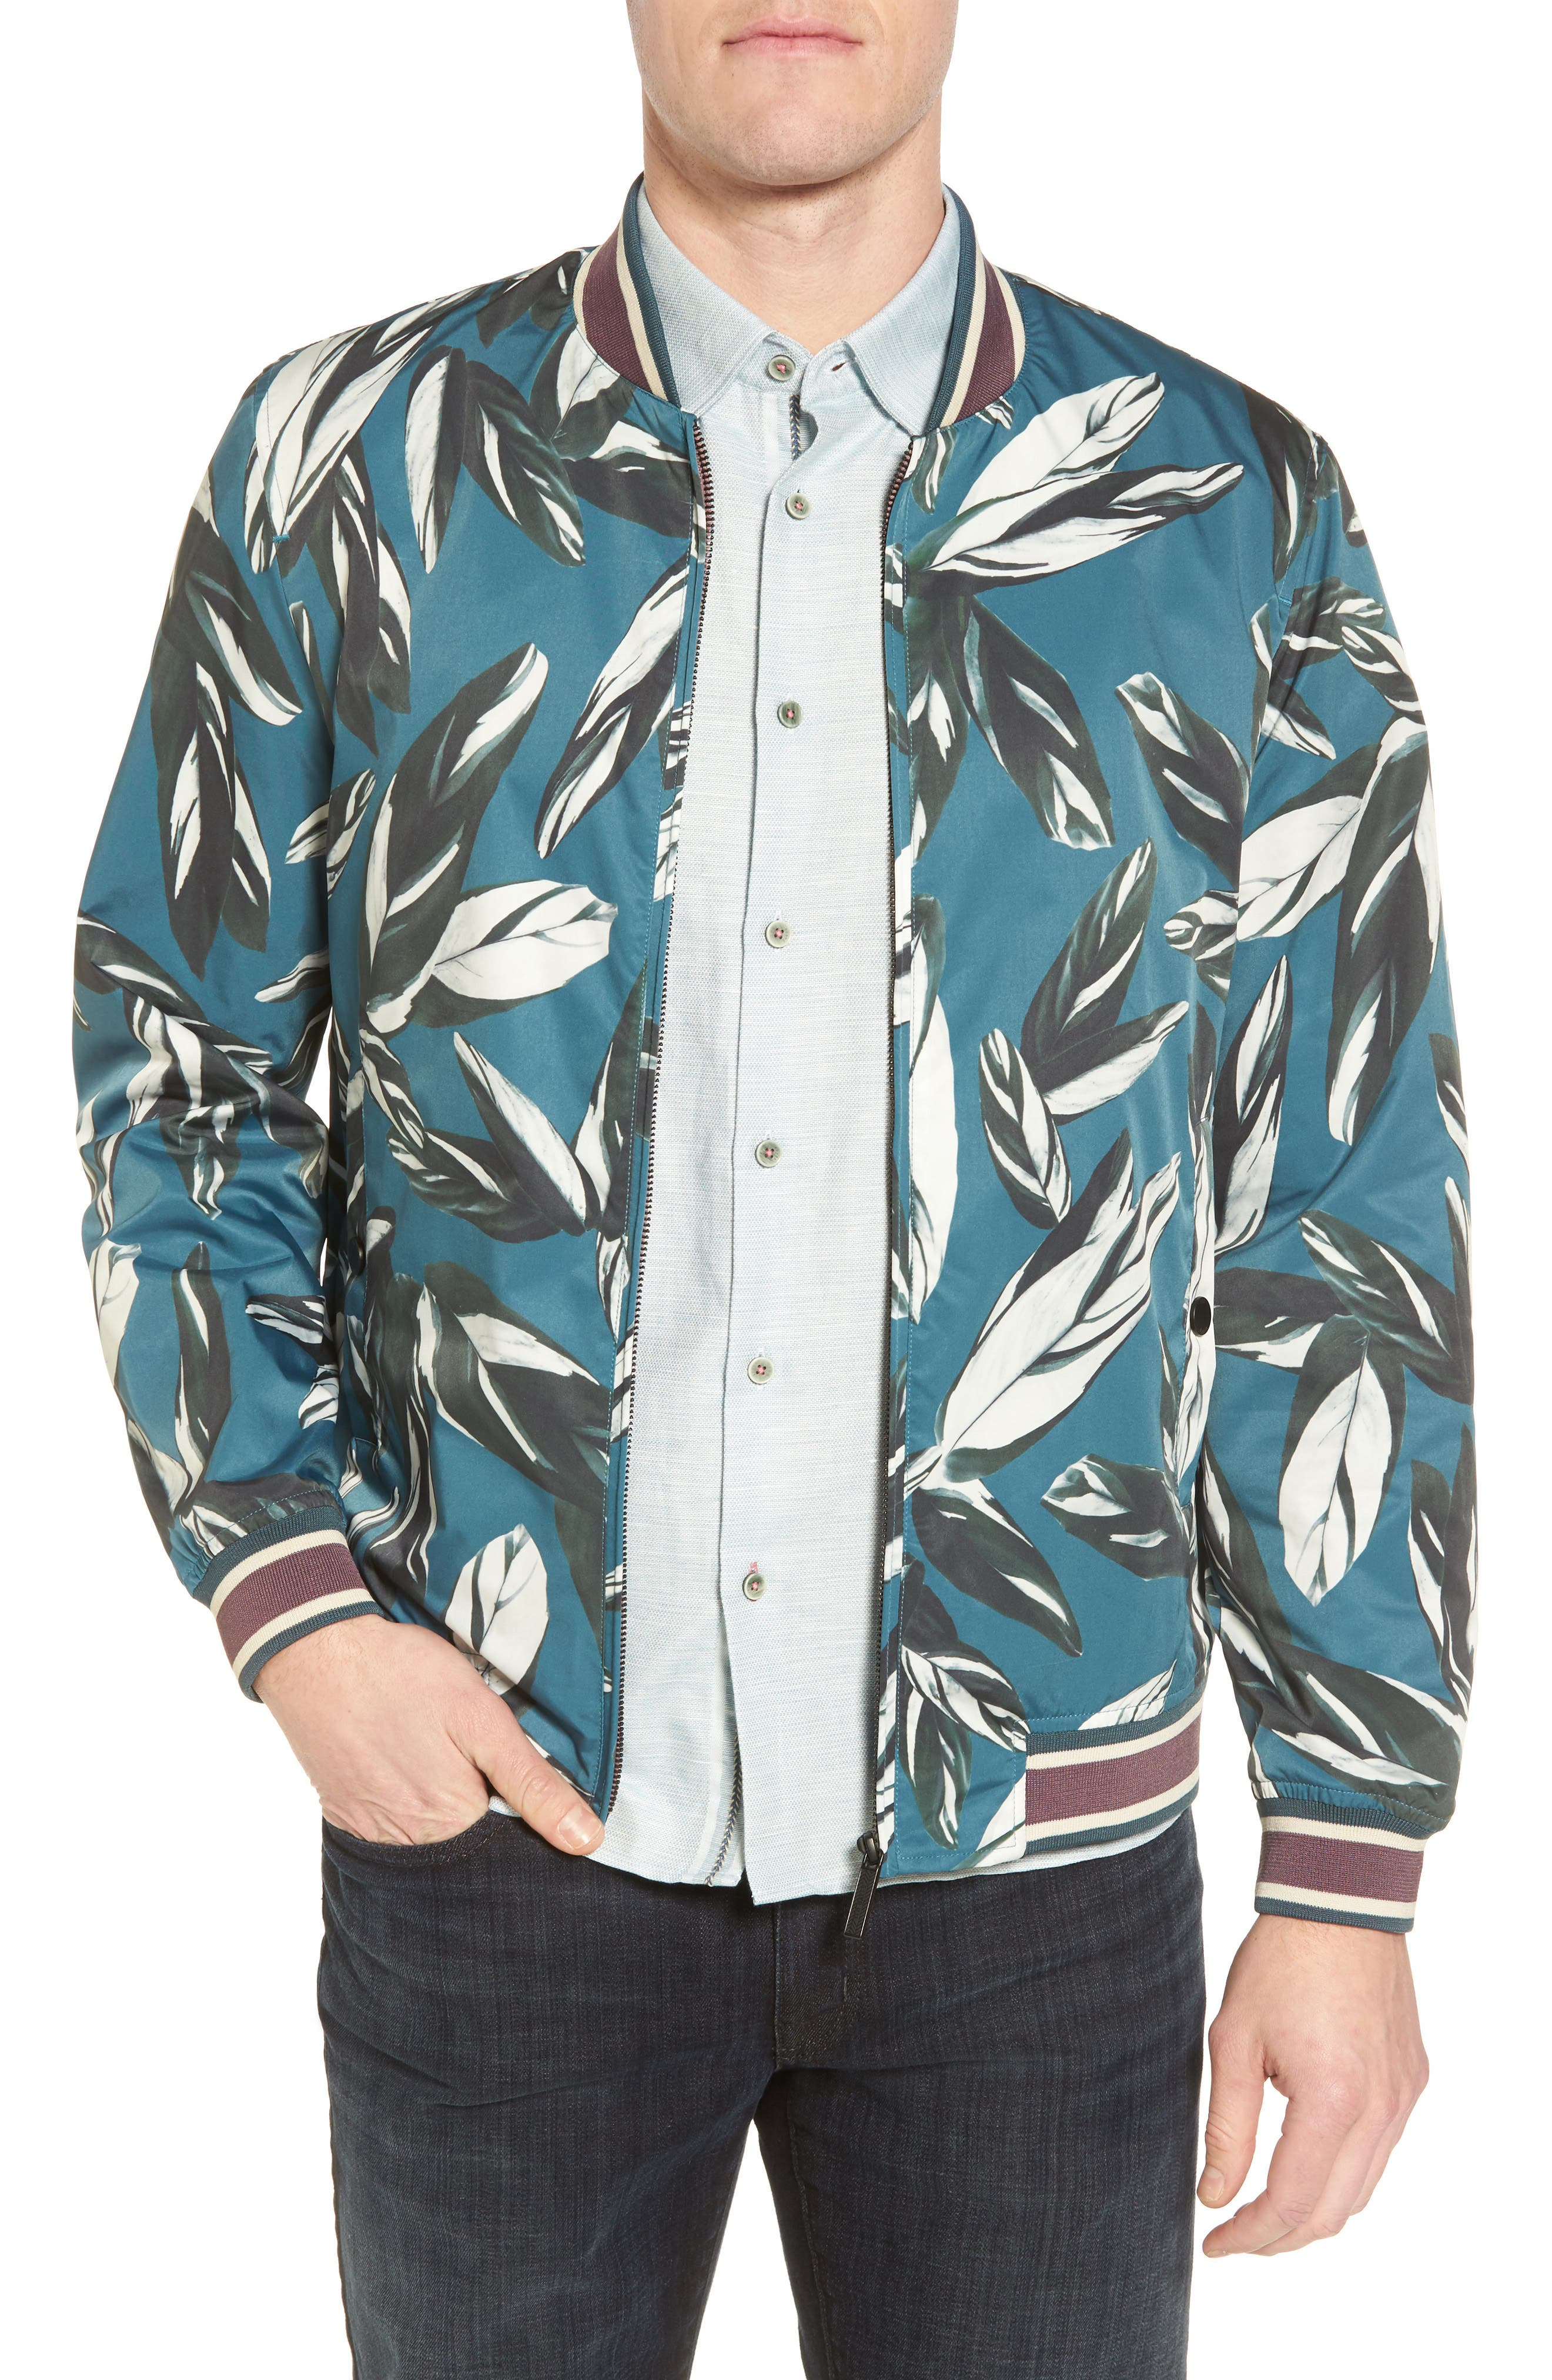 Toth Bomber Jacket,                         Main,                         color, Teal